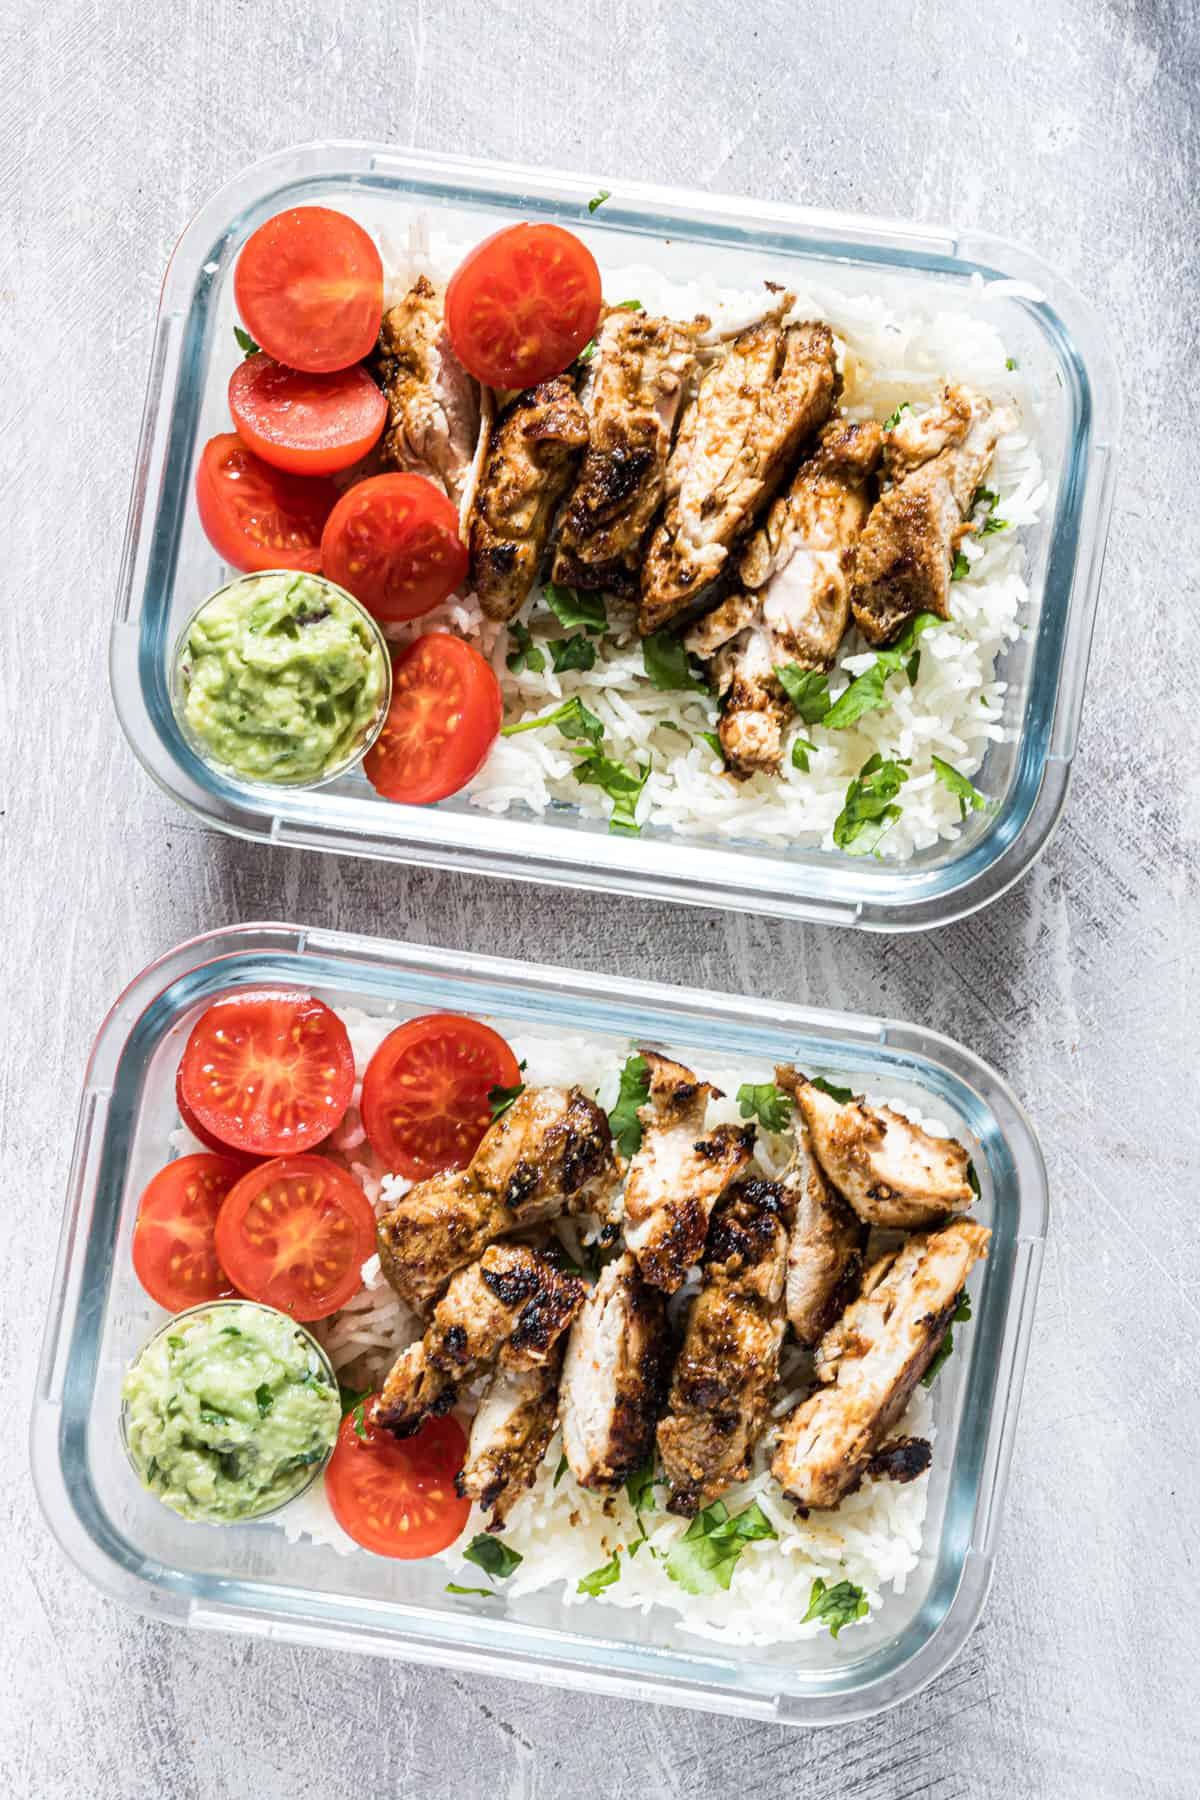 two portions of the finished meal prep chicken and rice